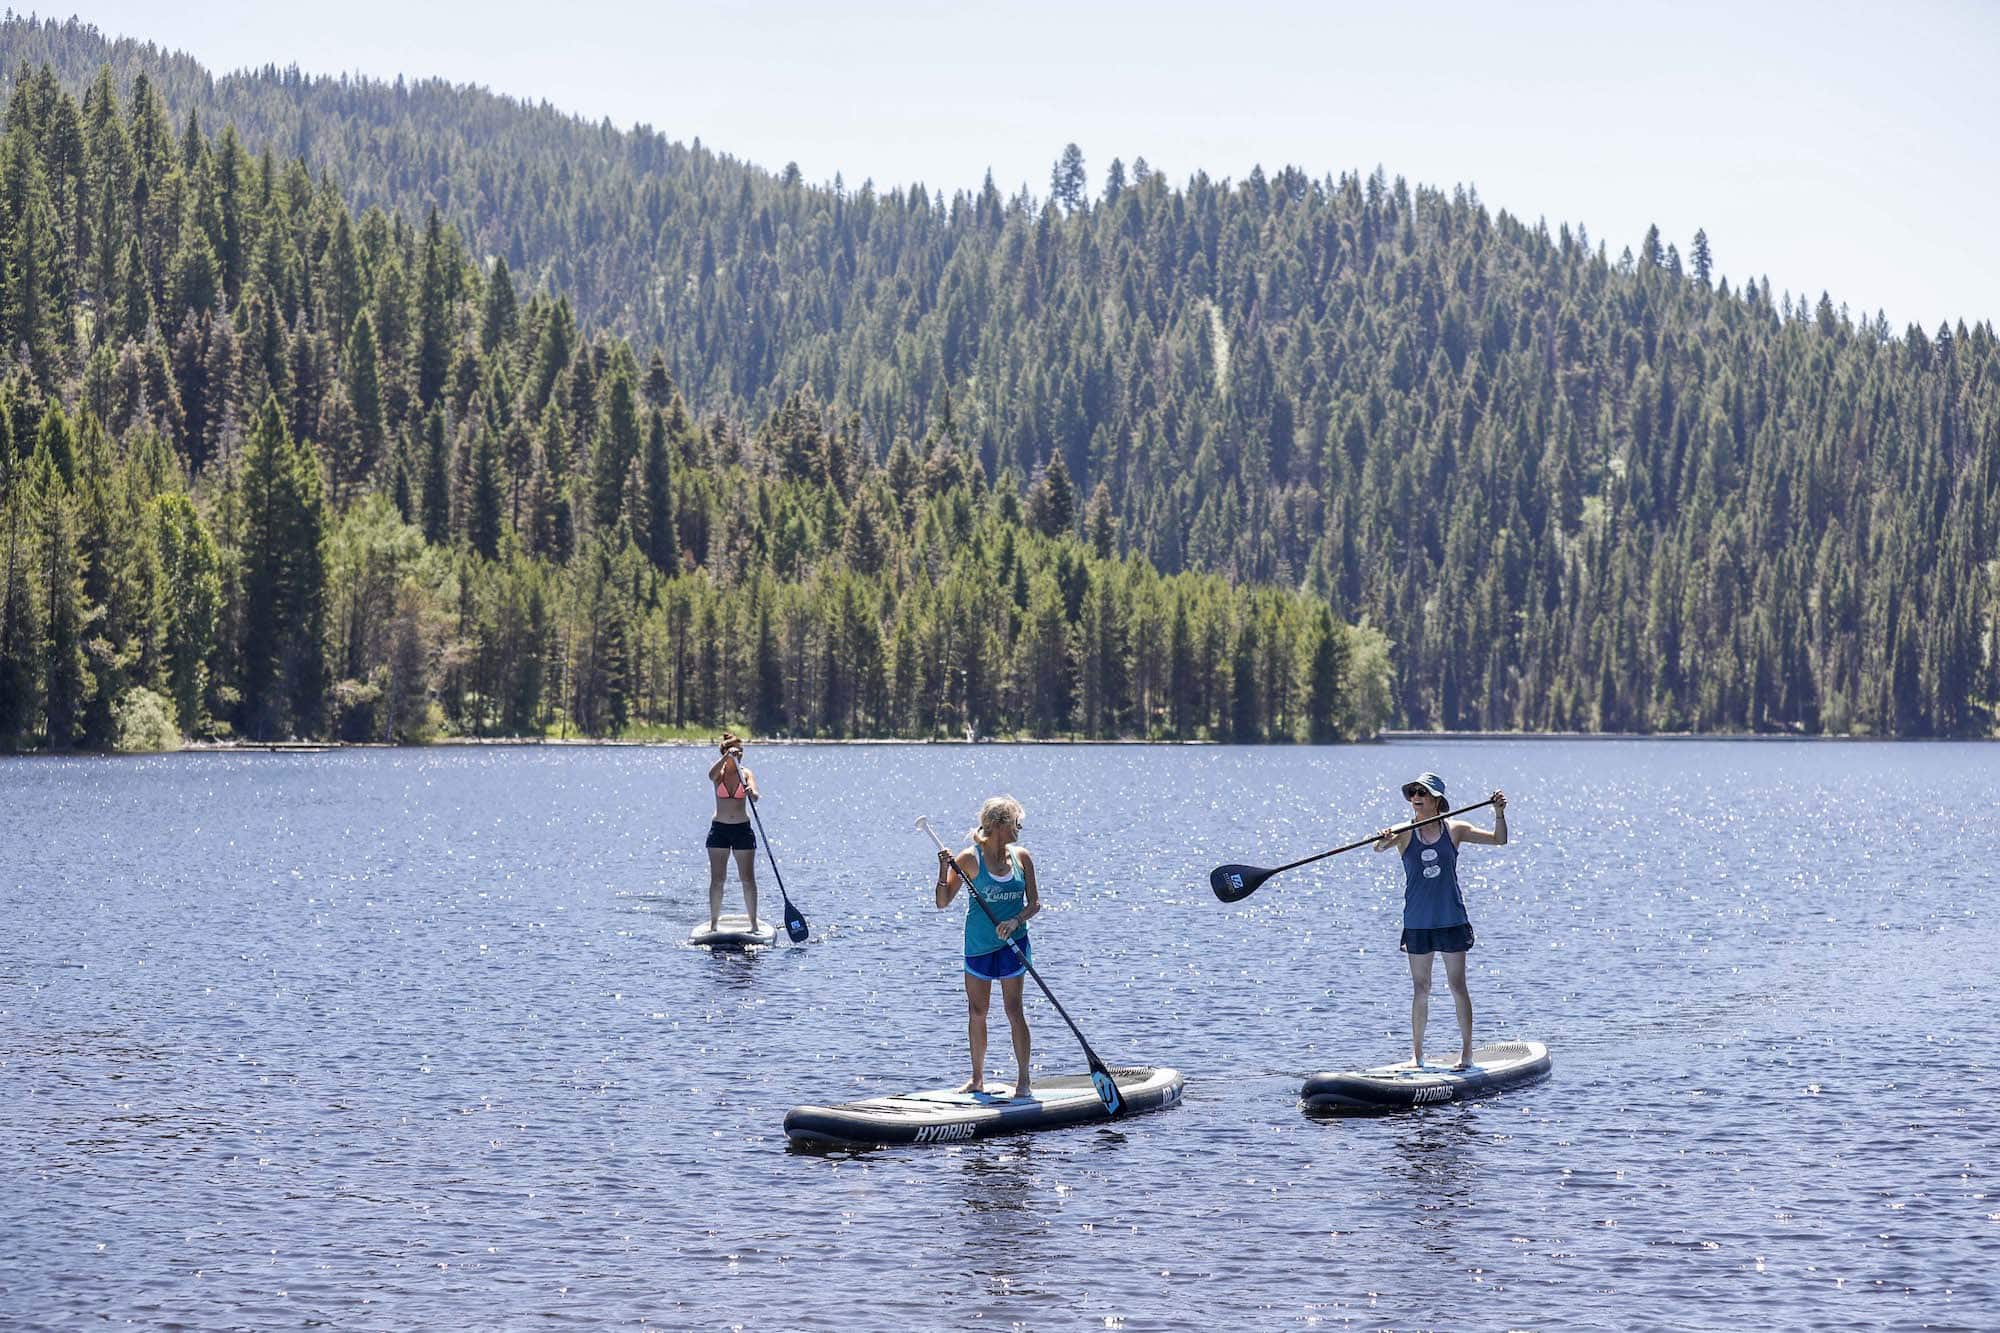 Paddle boarding at Open Roads Fest with free paddle board demos provided by Boise-based Hydrus paddle boards